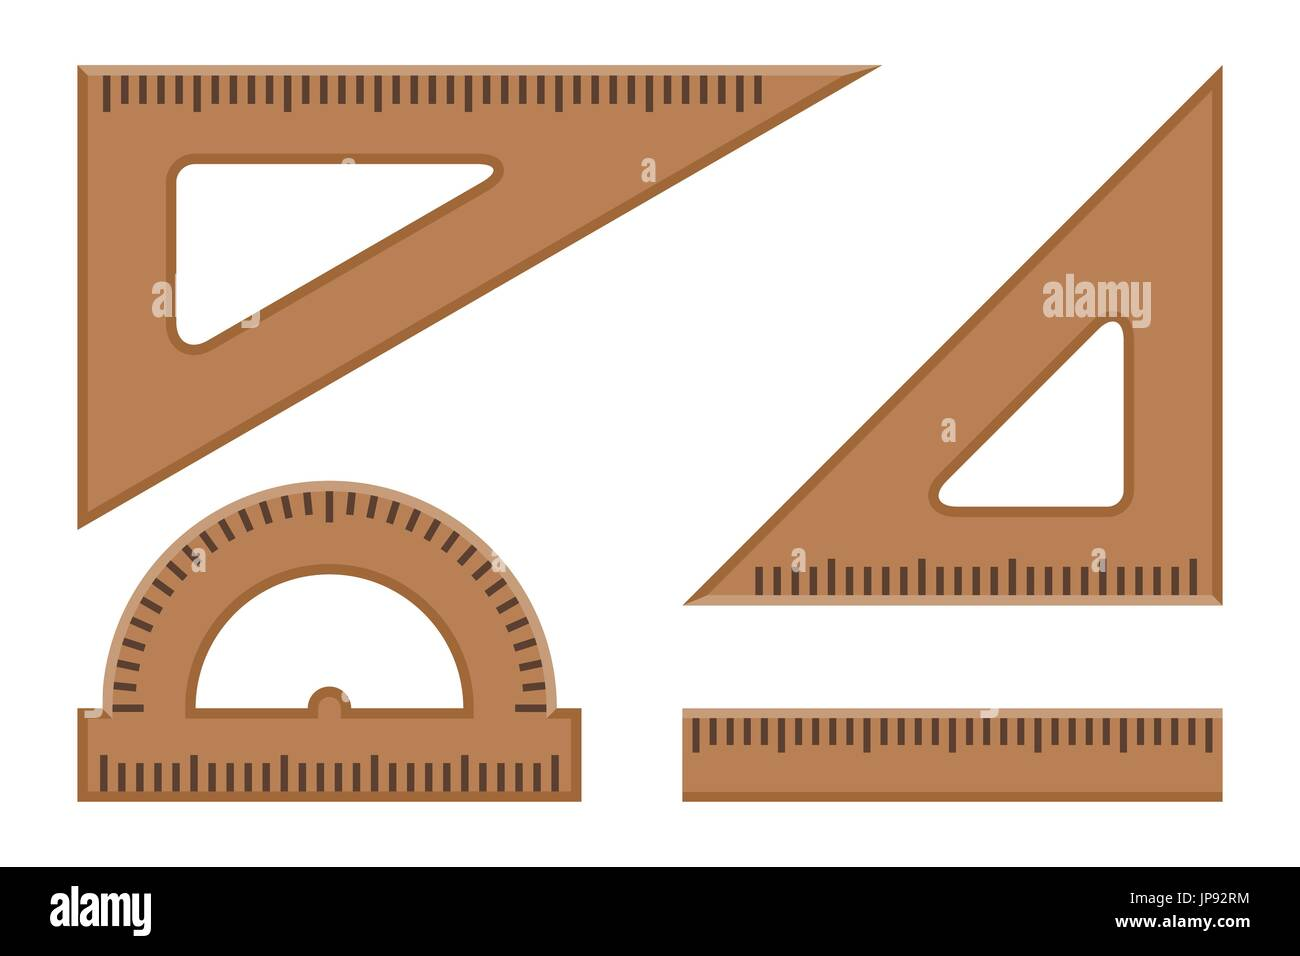 Rulers flat icons. - Stock Vector